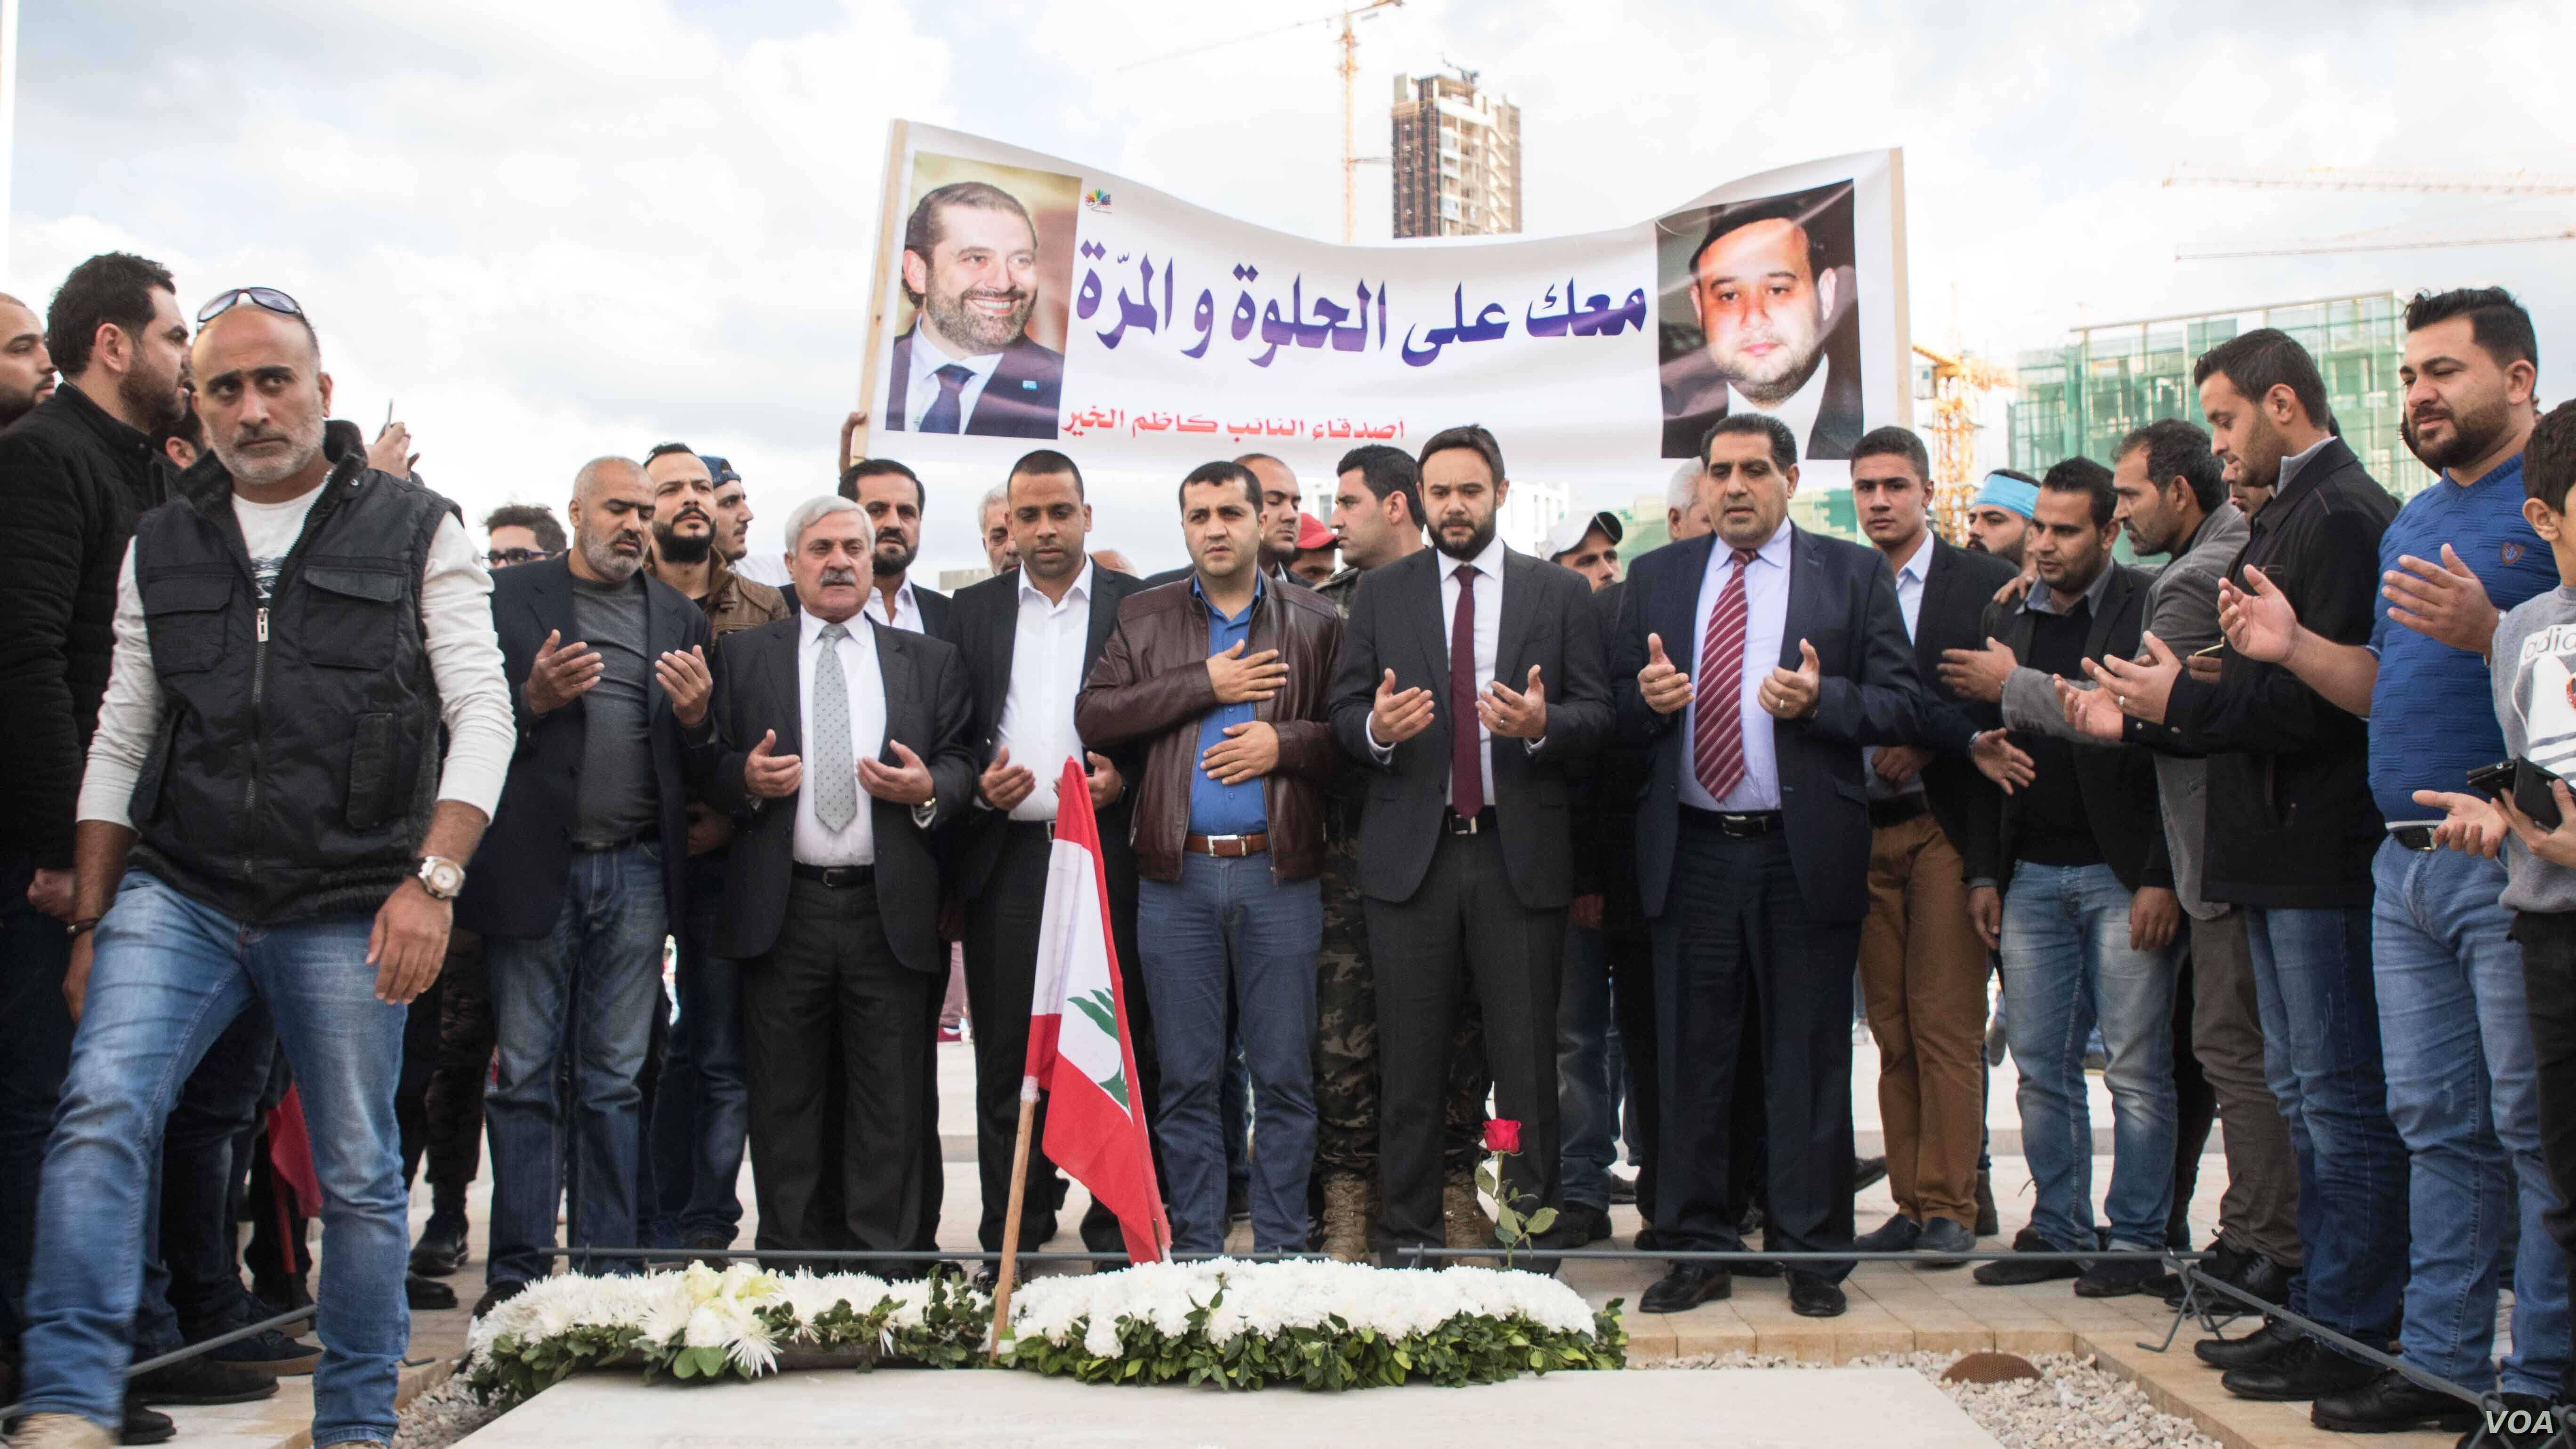 Supporters of Prime Minister Saad Hariri stand in front of the grave his father, Rafik, in Beirut, Lebanon, Nov. 22, 2017. (John Owens for VOA)